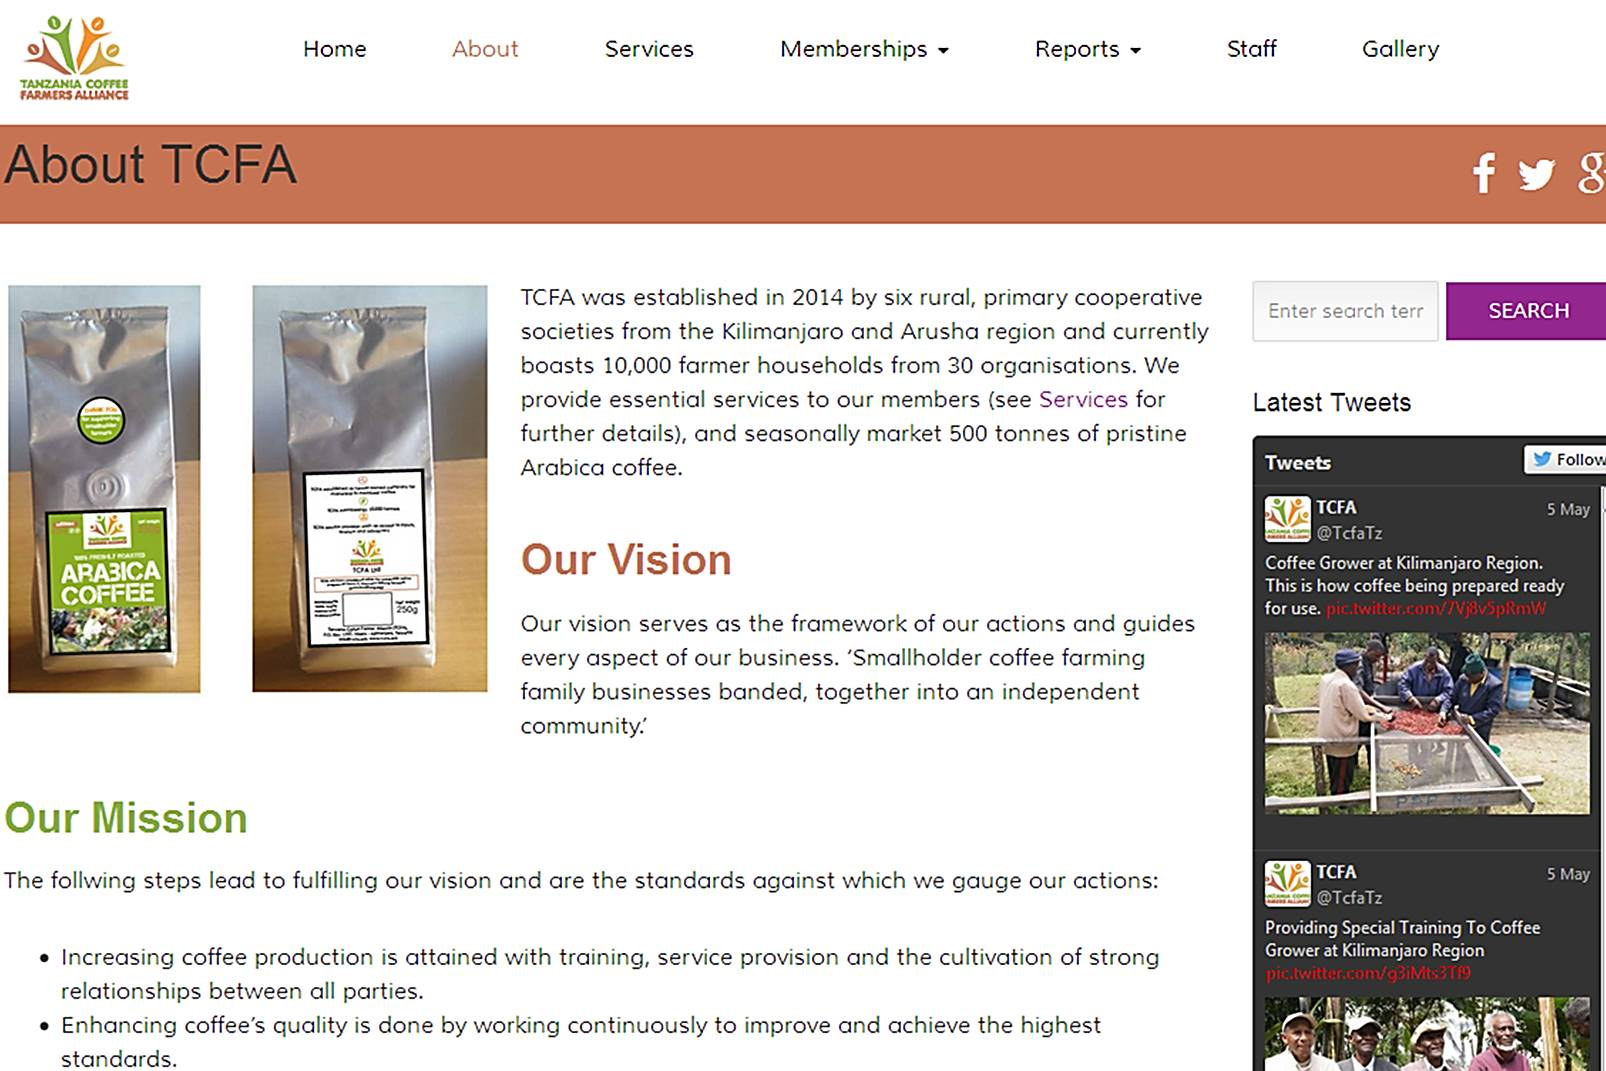 TCFA website page our vision text